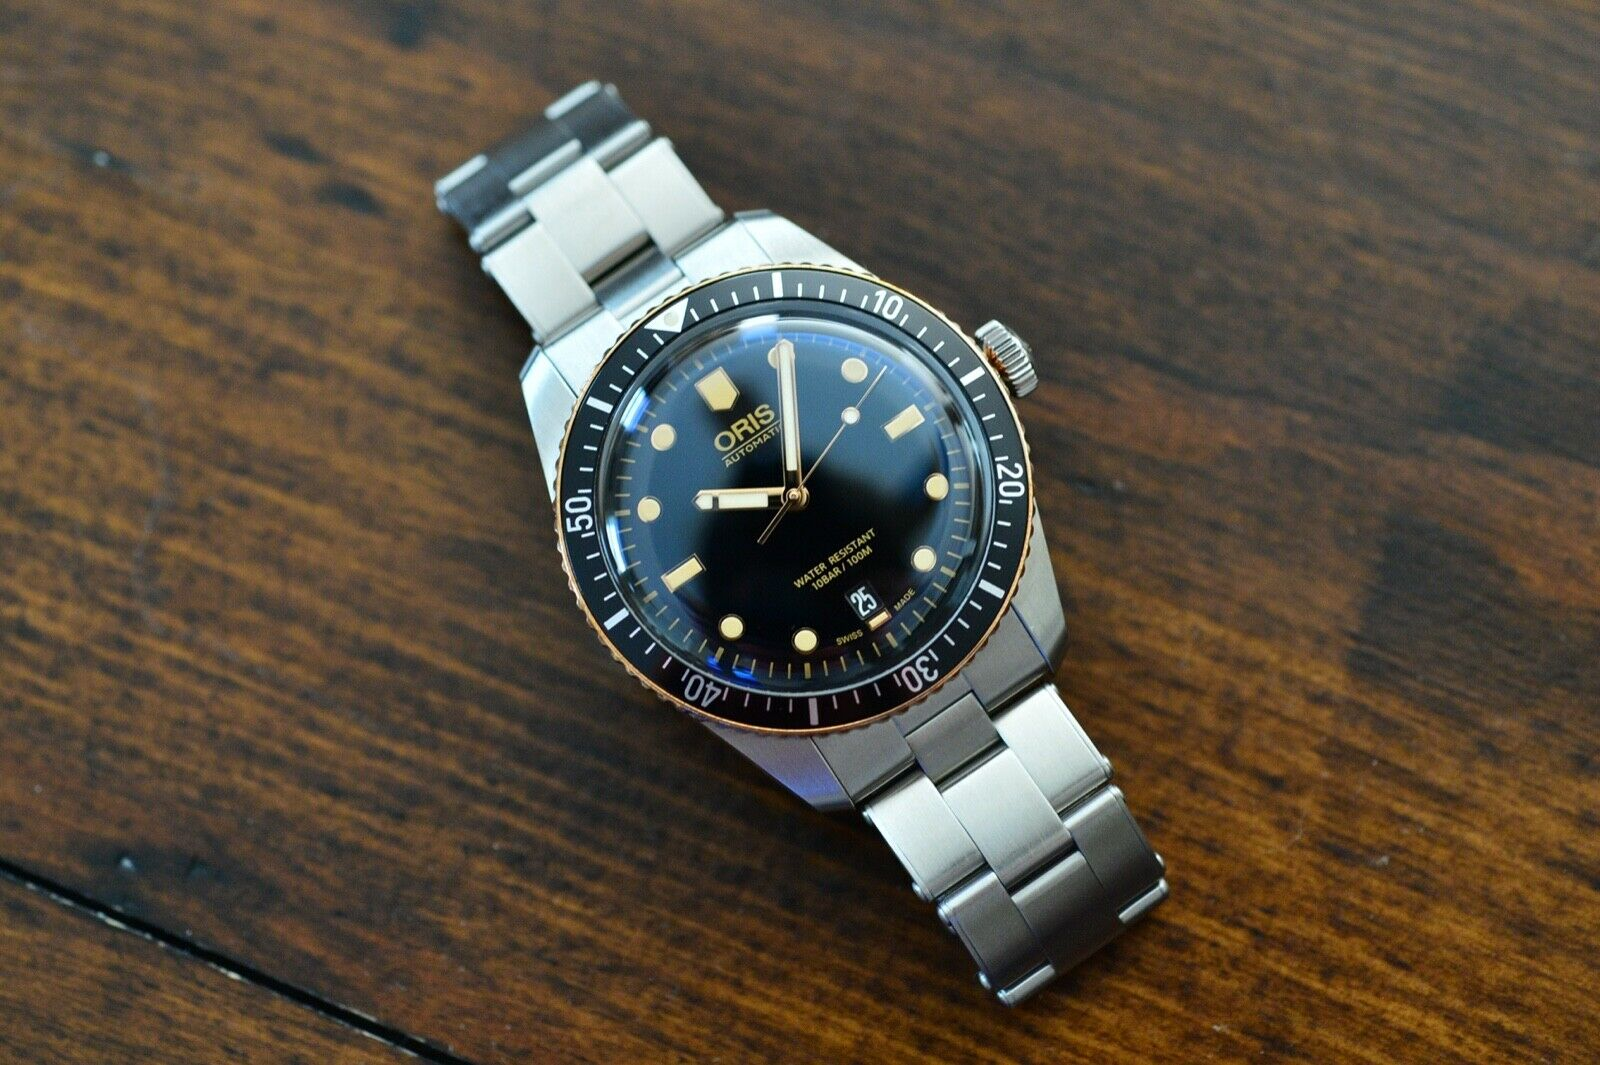 Used Oris Diver 65 Divers Sixty Five Bronze Bezel automatic 40mm dive watch - watch picture 1